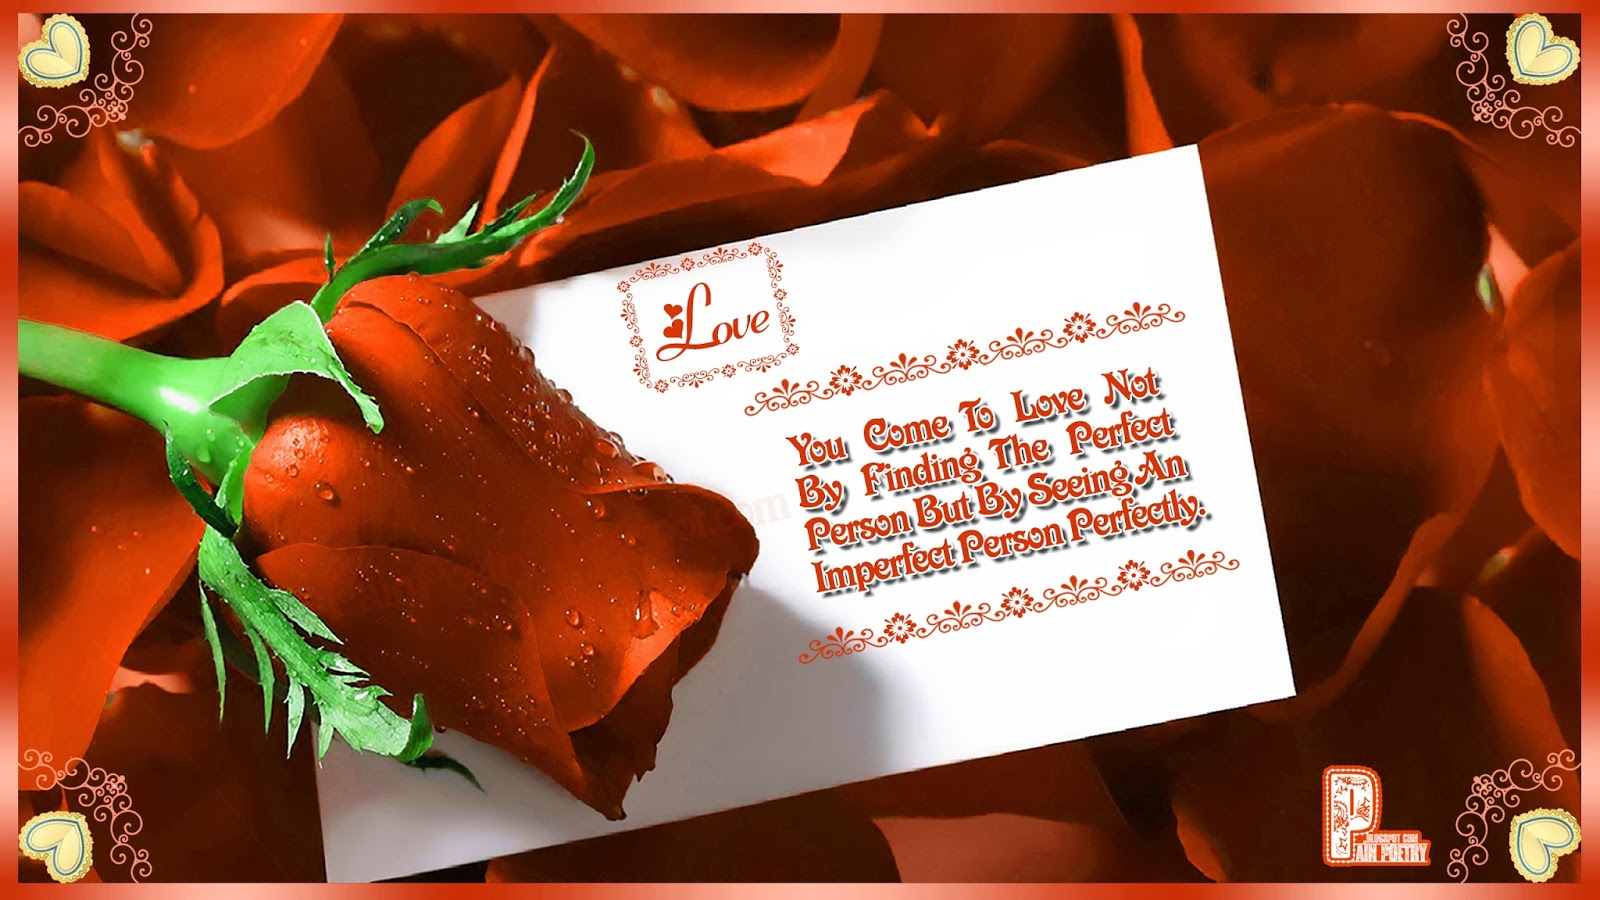 Love-Greetings-Quote-For-Friend-With-Red-Rose-Image-Photo-Wallpaper-HD